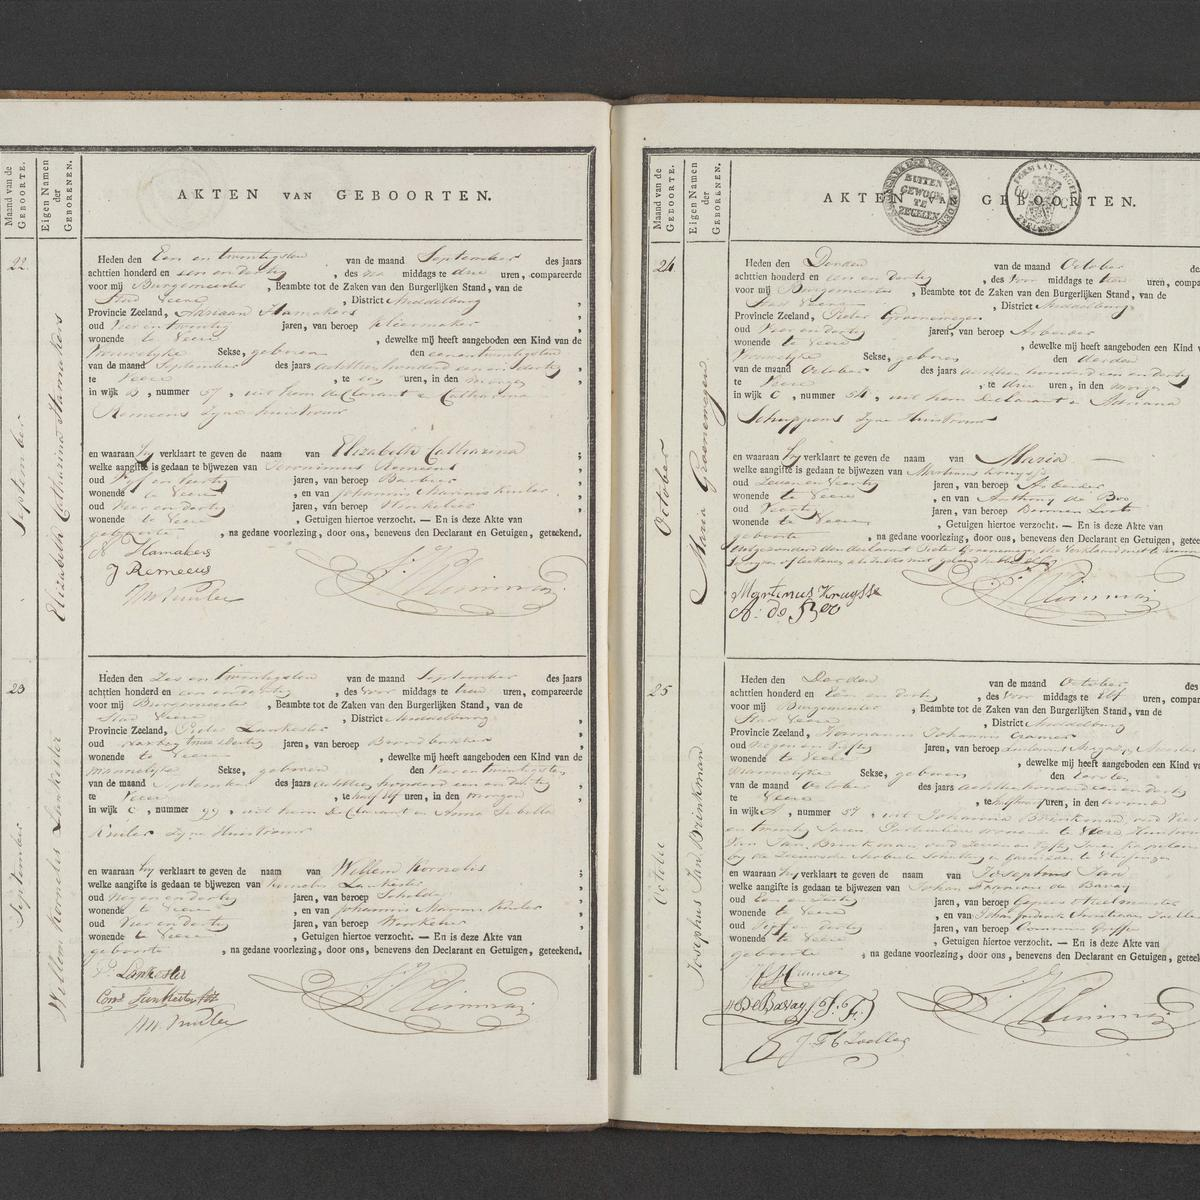 Civil registry of births, Veere, 1831, records 22-25